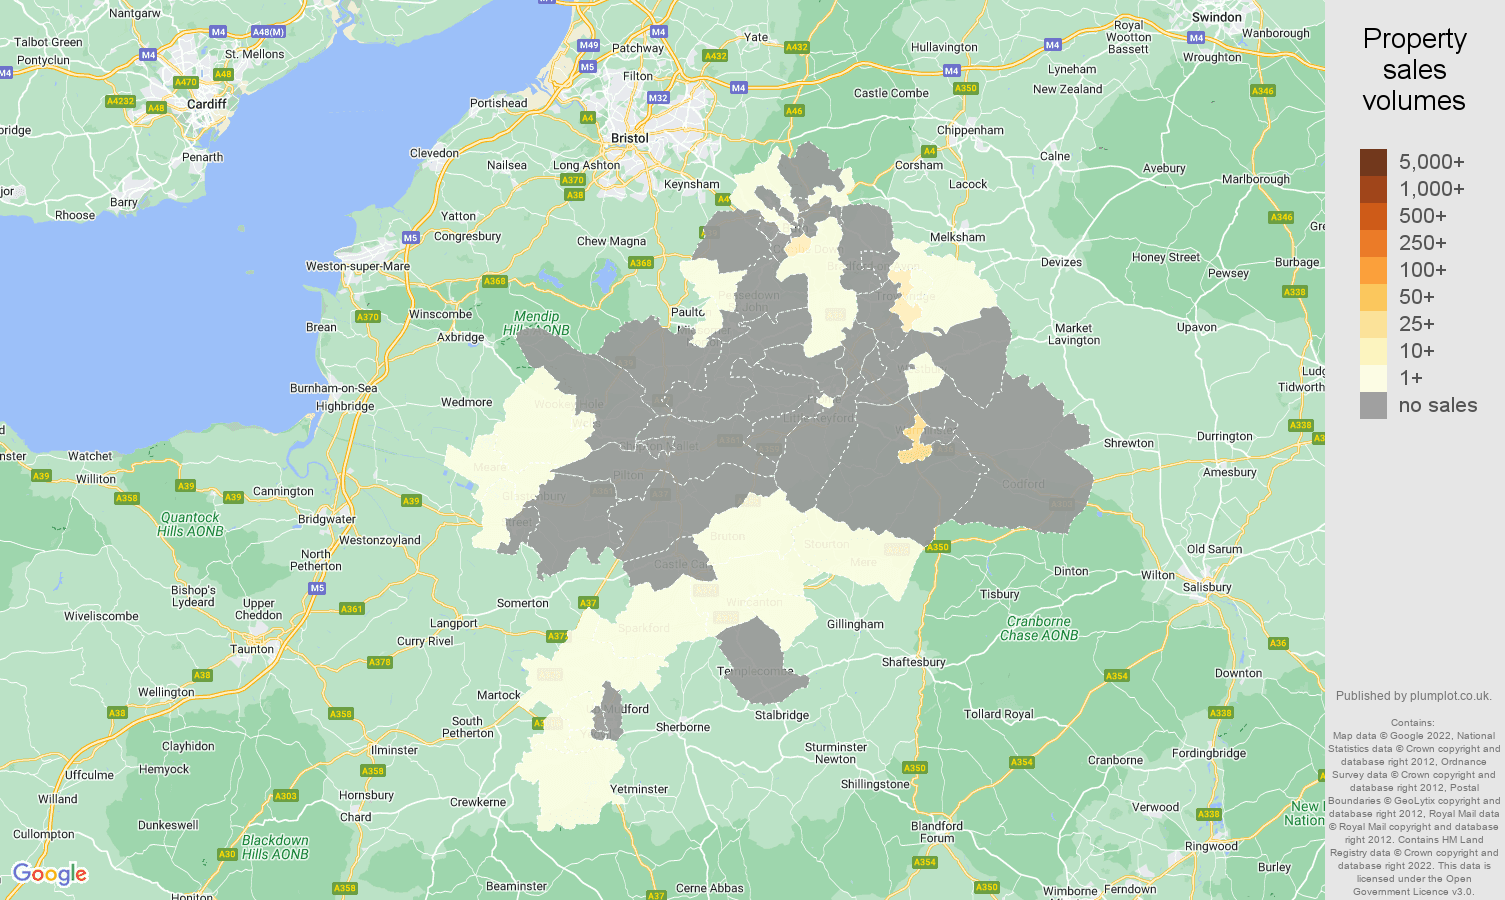 Bath map of sales of new properties